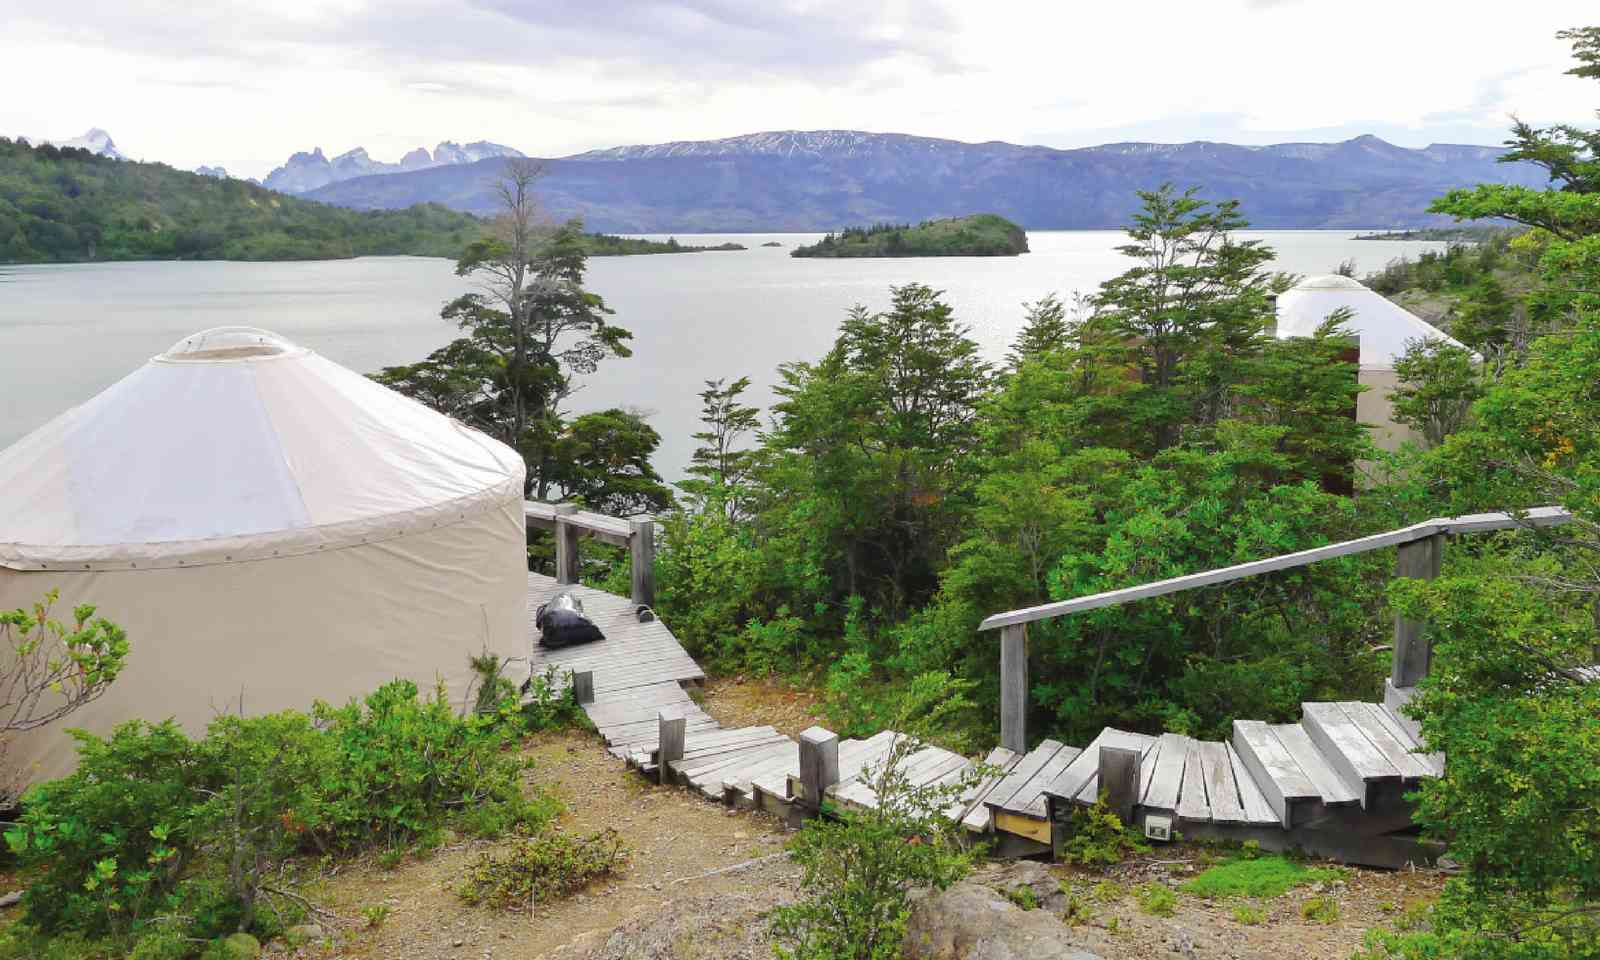 Accommodation at Patagonia Camp